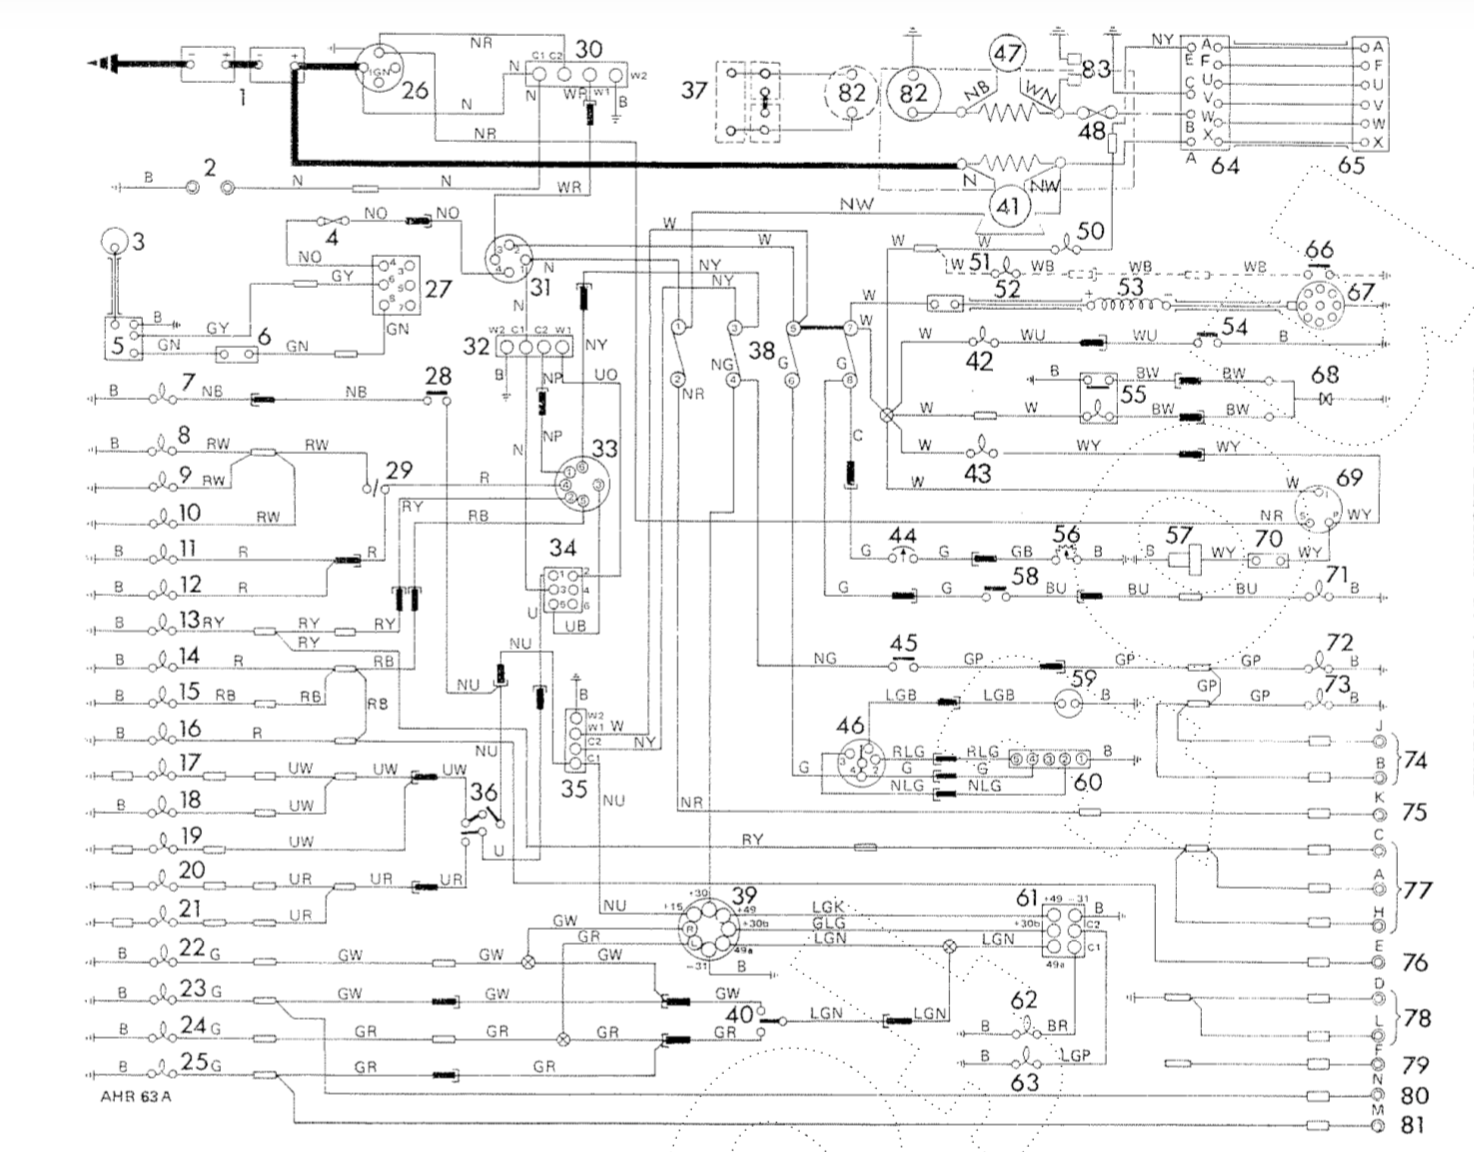 hight resolution of diagram land wiring rover stc8884 wiring diagramland rover 24v wiring diagram wiring diagram z424v wiring diagram